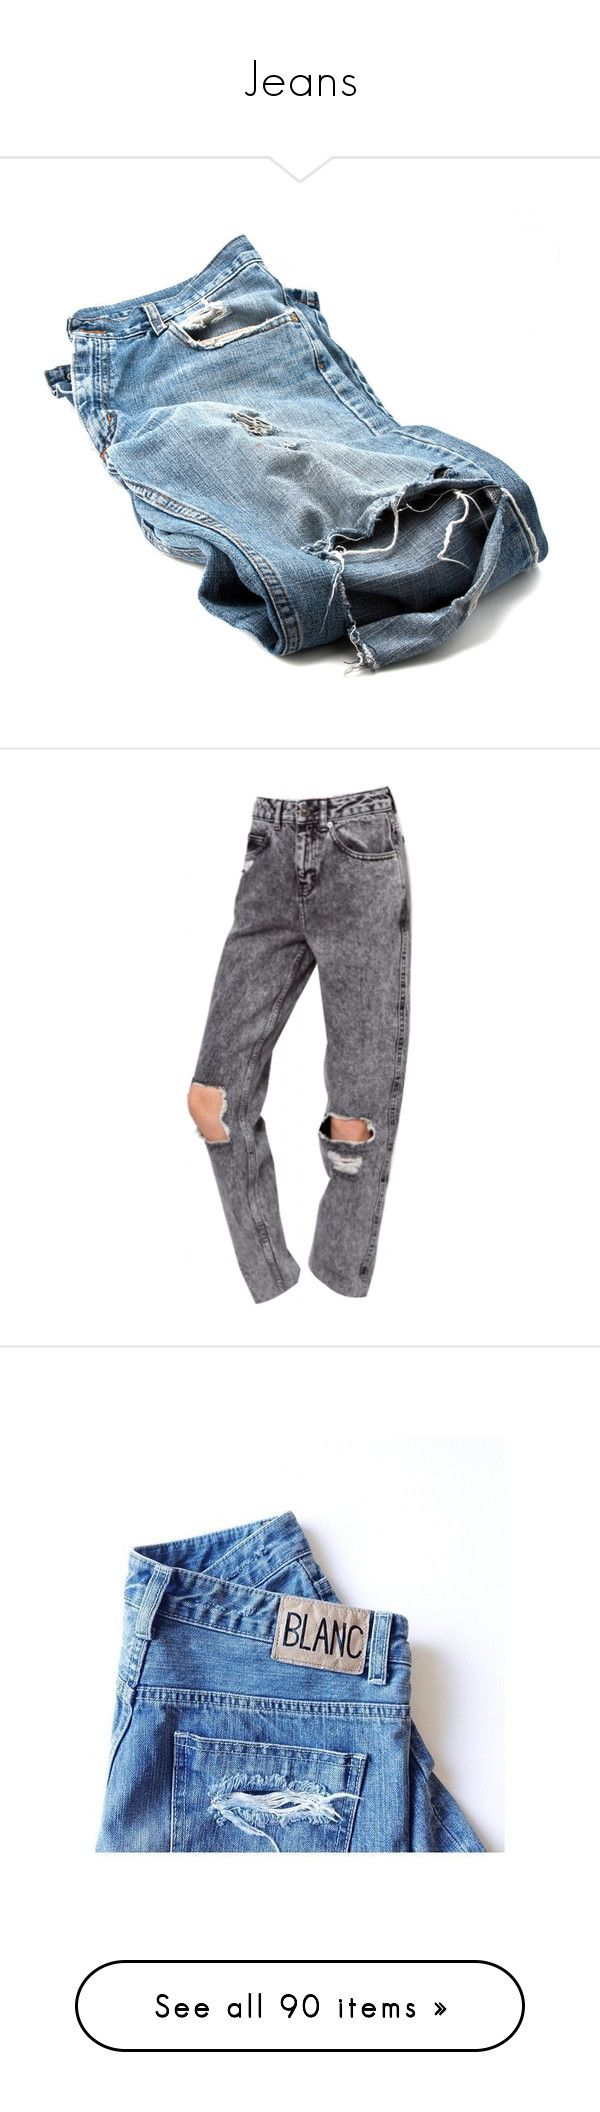 """""""Jeans"""" by haya22s ❤ liked on Polyvore featuring jeans, pants, bottoms, denim, denim jeans, blue jeans, blue denim jeans, black, cheap monday skinny jeans and cheap monday jeans"""